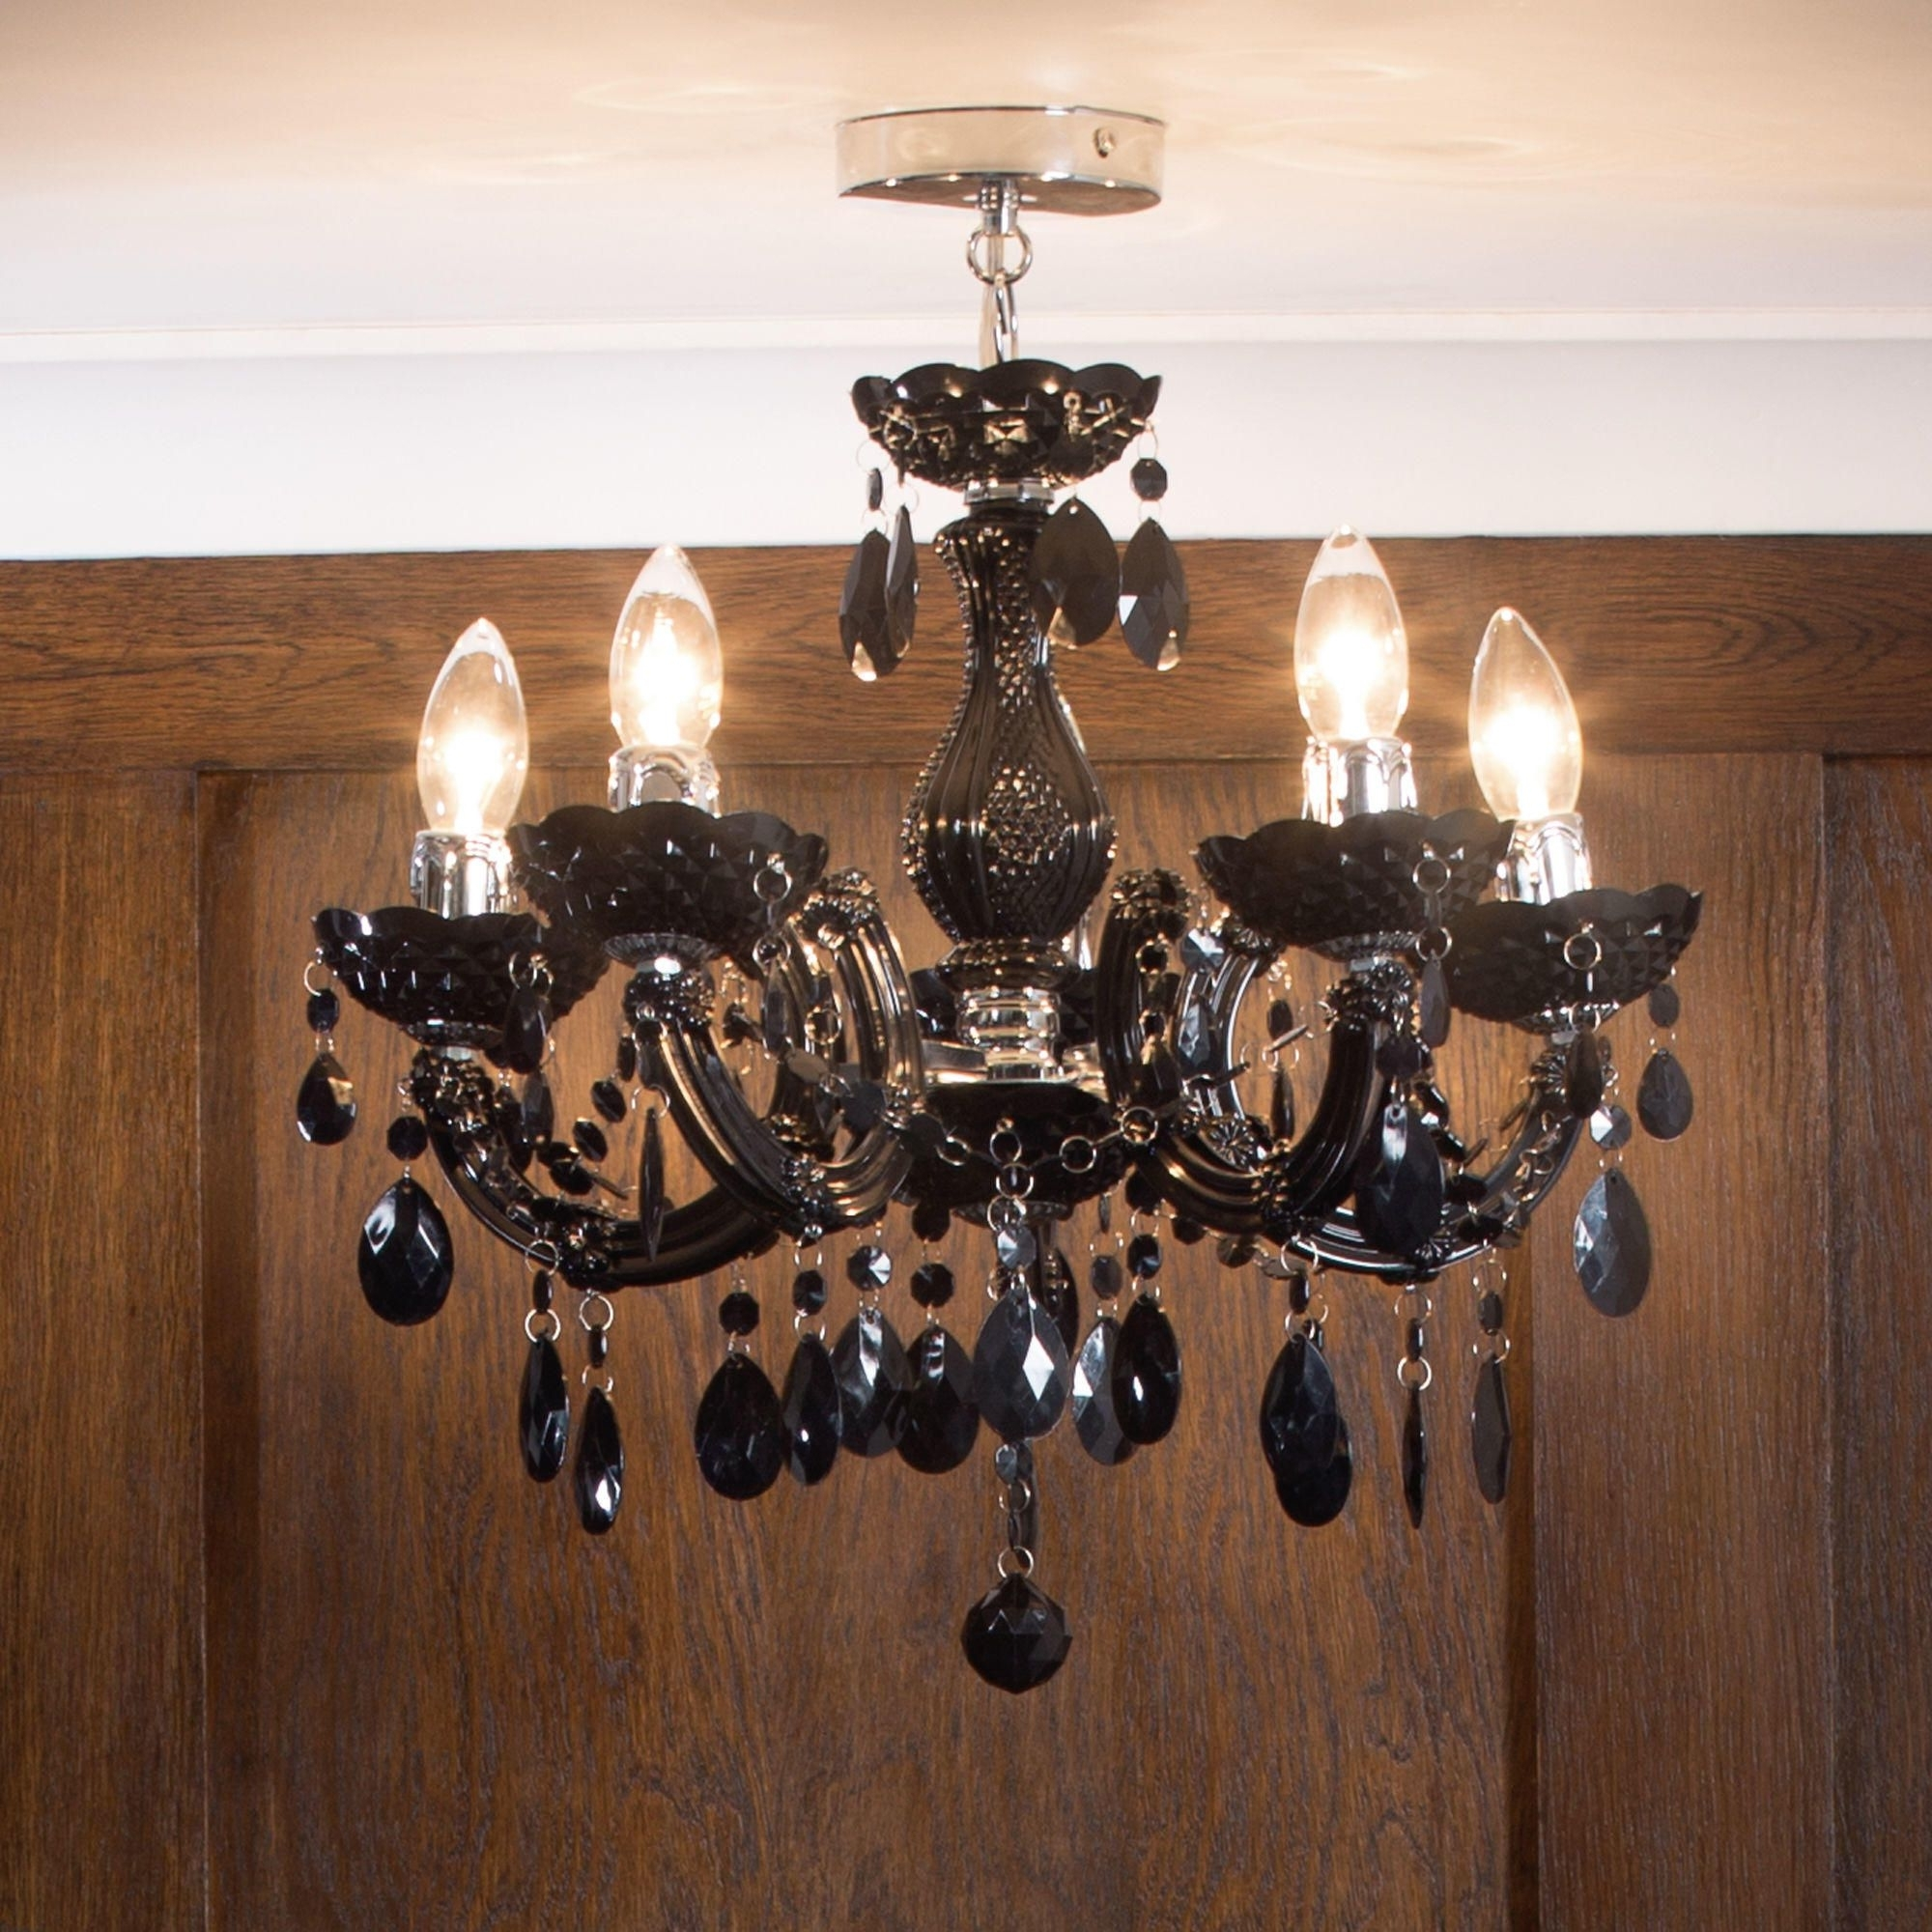 Widely Used Chandeliers For Low Ceilings – Litecraft In Chandelier For Low Ceiling (View 4 of 15)